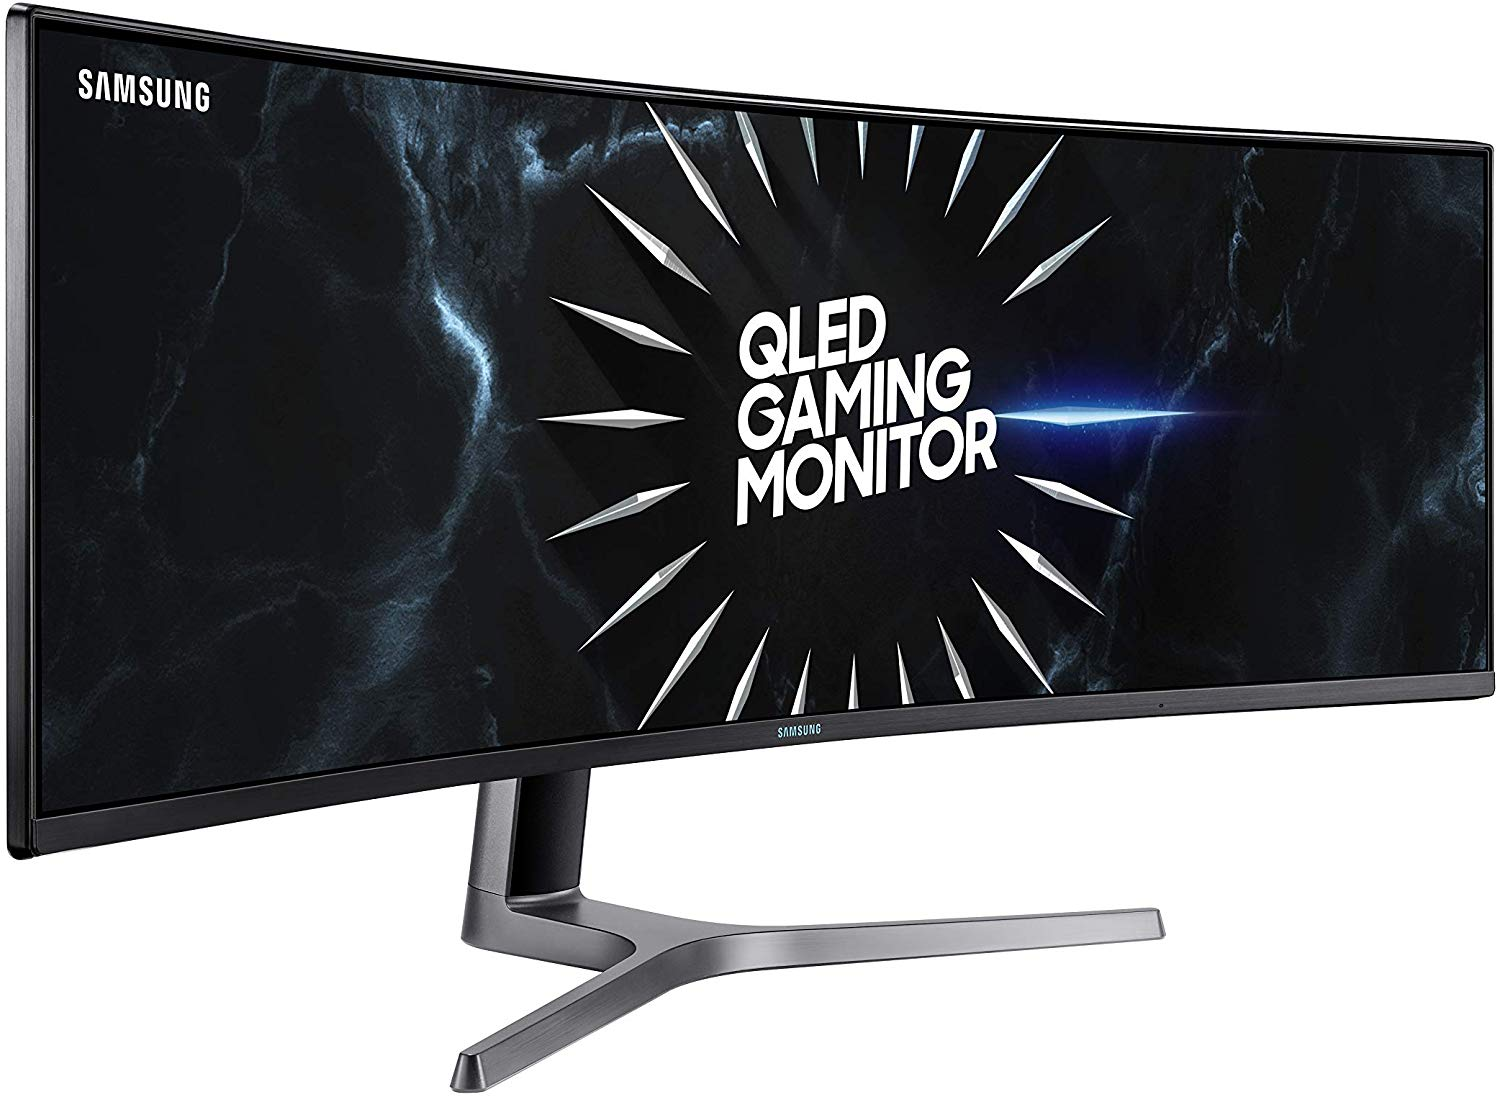 Samsung 49-Inch UltraWide QLED Monitor is Almost $500 Cheaper Than Its Original Price